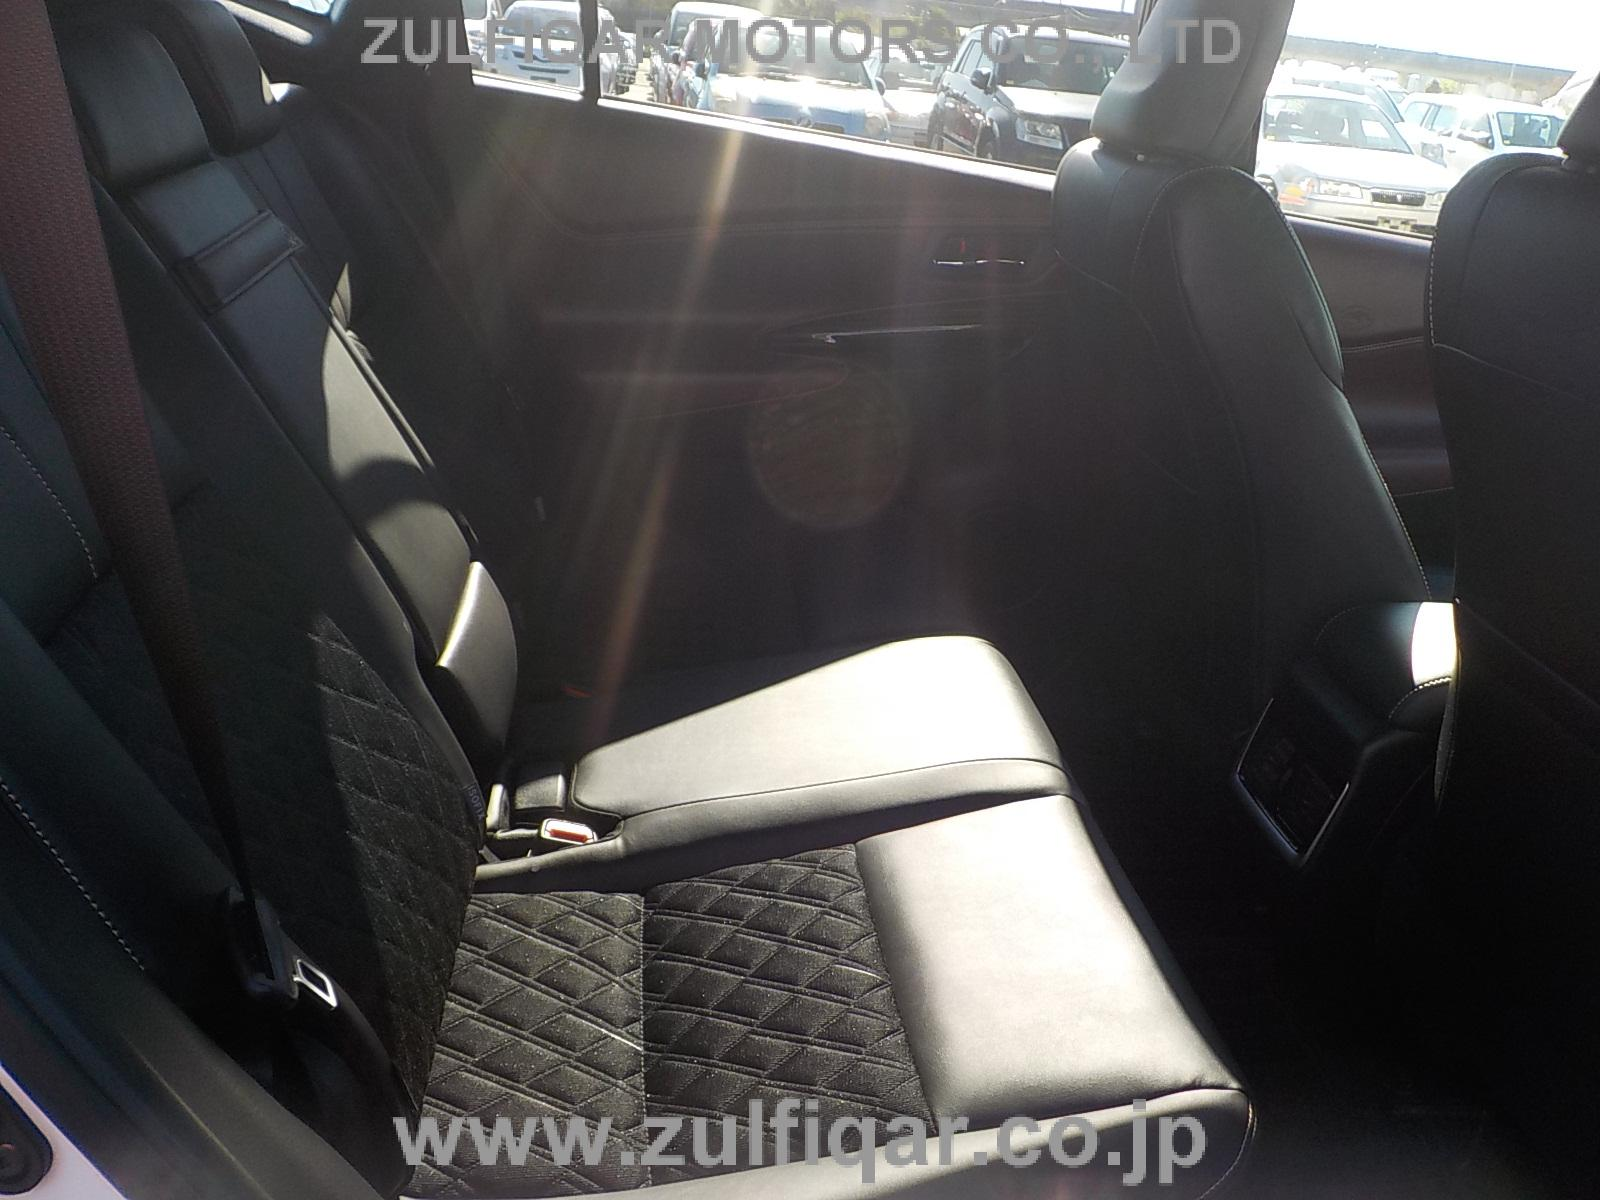 TOYOTA HARRIER 2015 Image 12